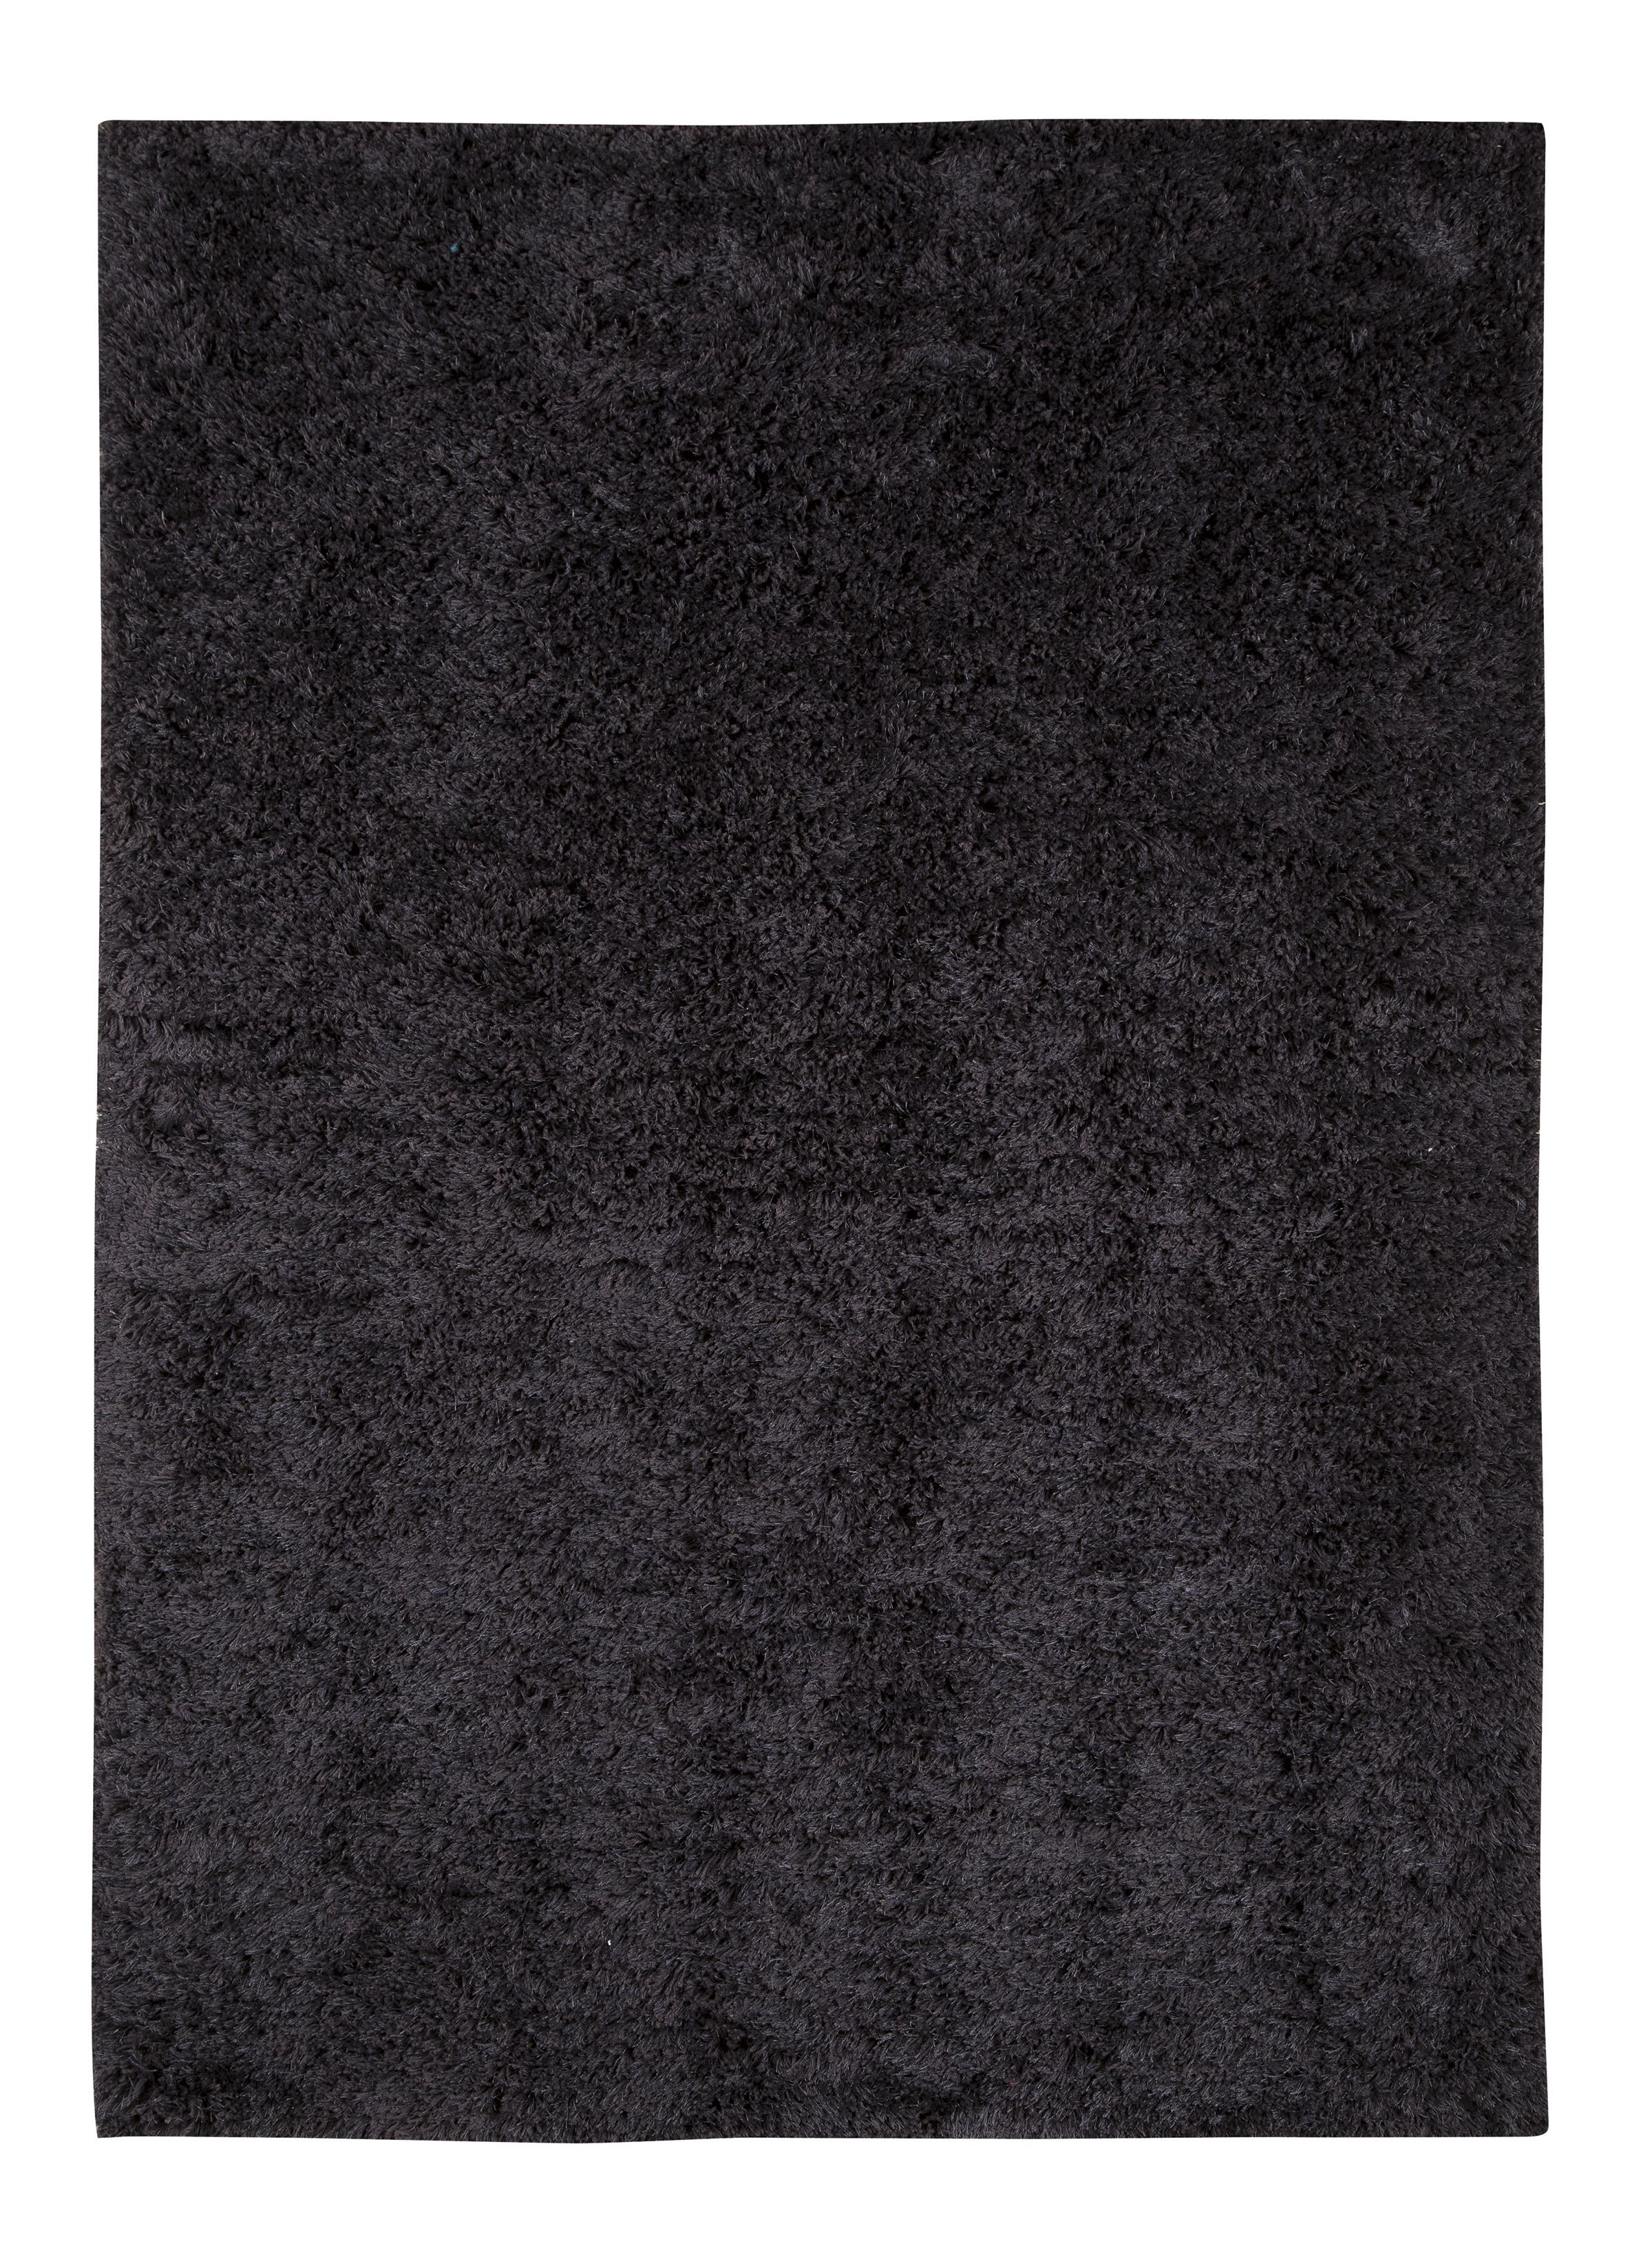 Signature Design by Ashley Transitional Area Rugs Alonso Graphite Medium Rug - Item Number: R400582